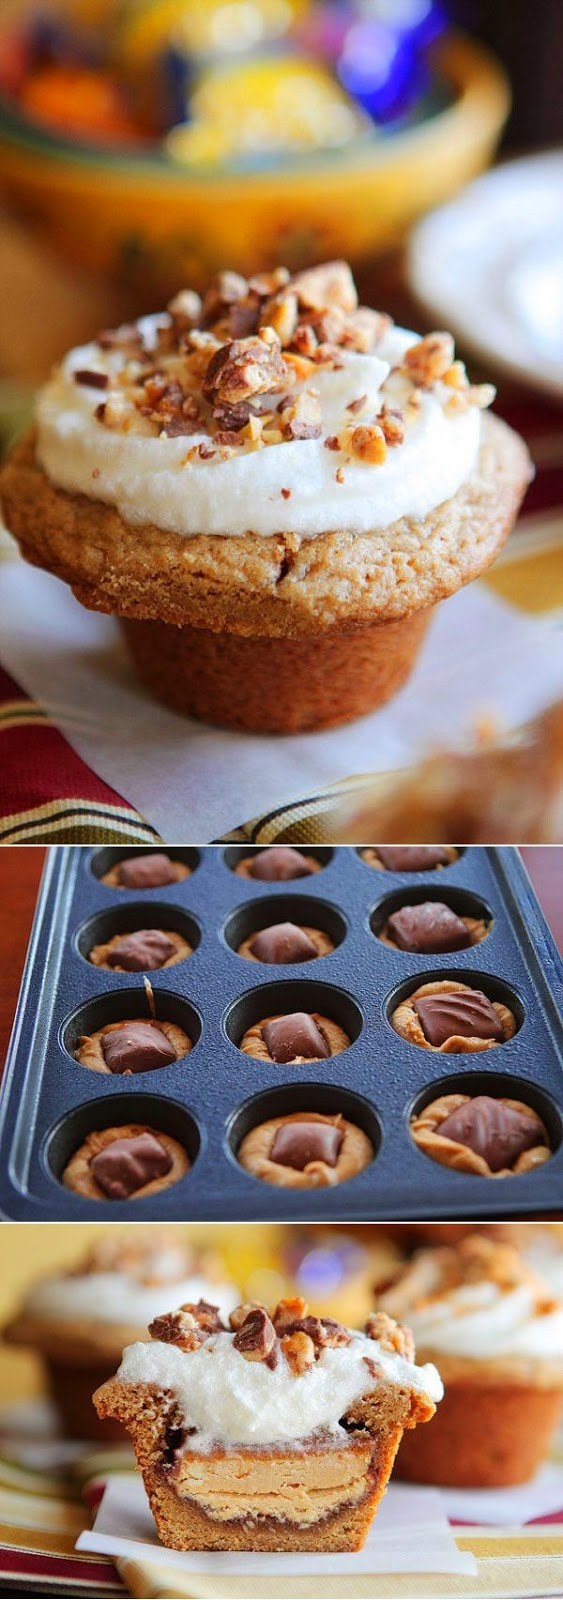 how to make candy stuffed cupcakes